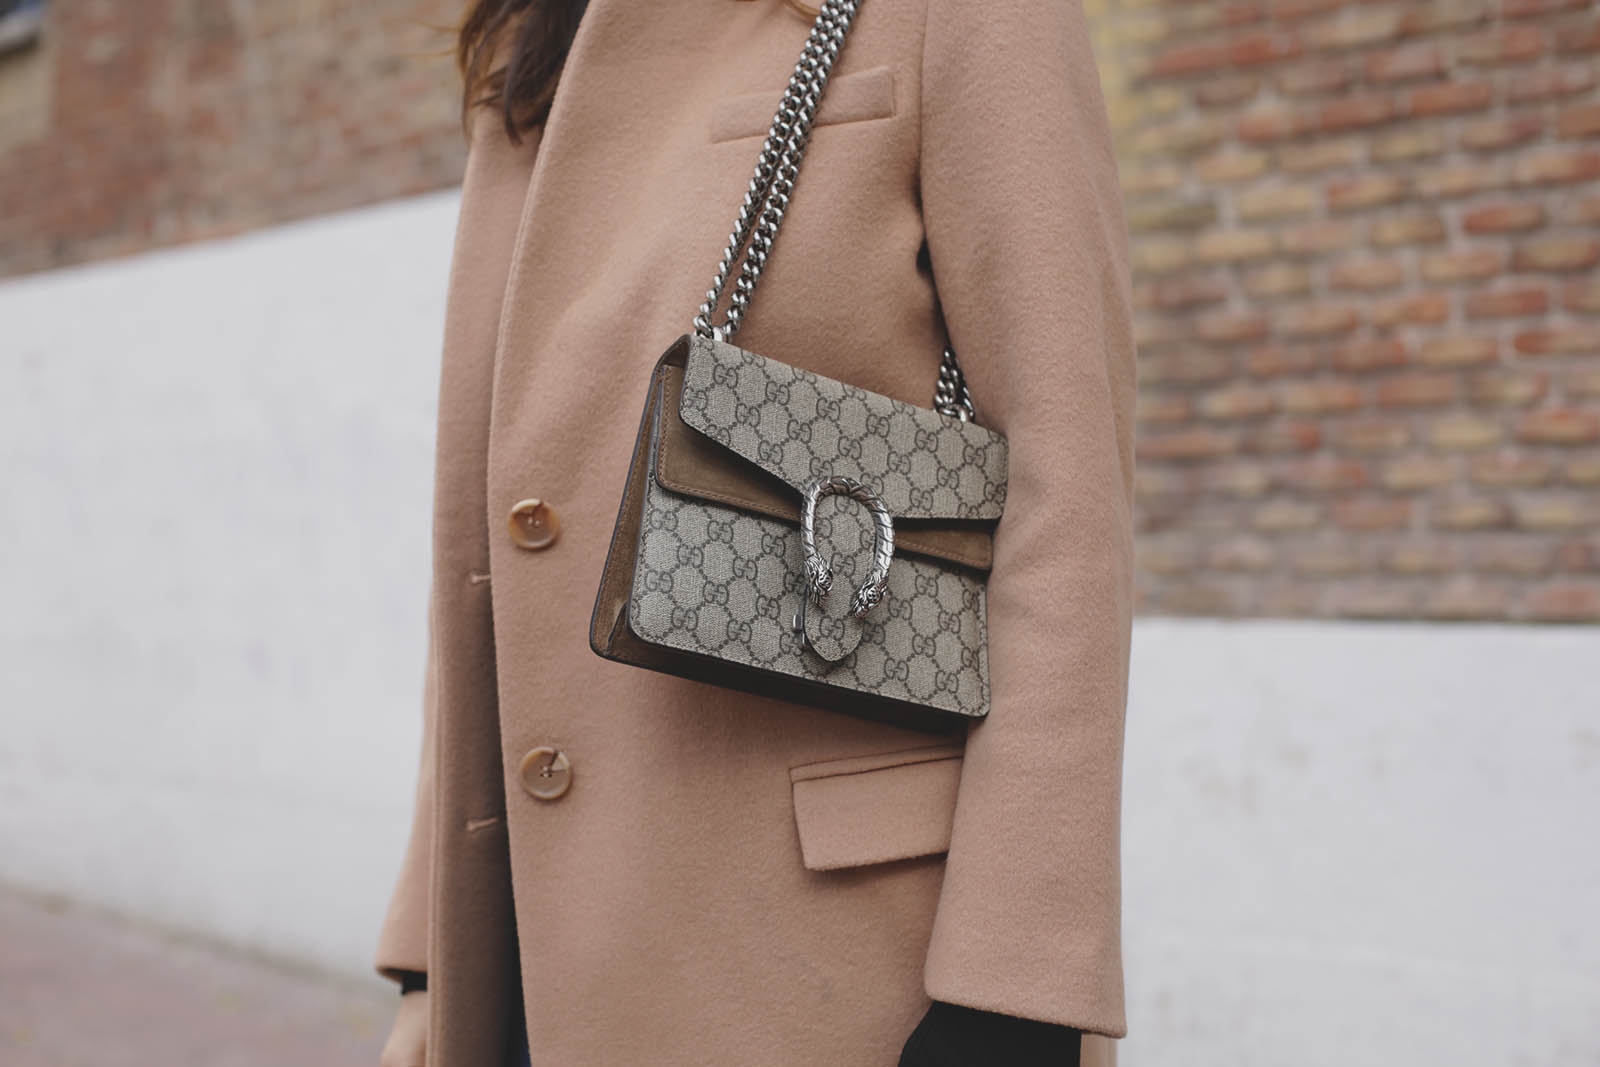 gucci_dyonisus_street_style_tendencia_ladyaddict_1